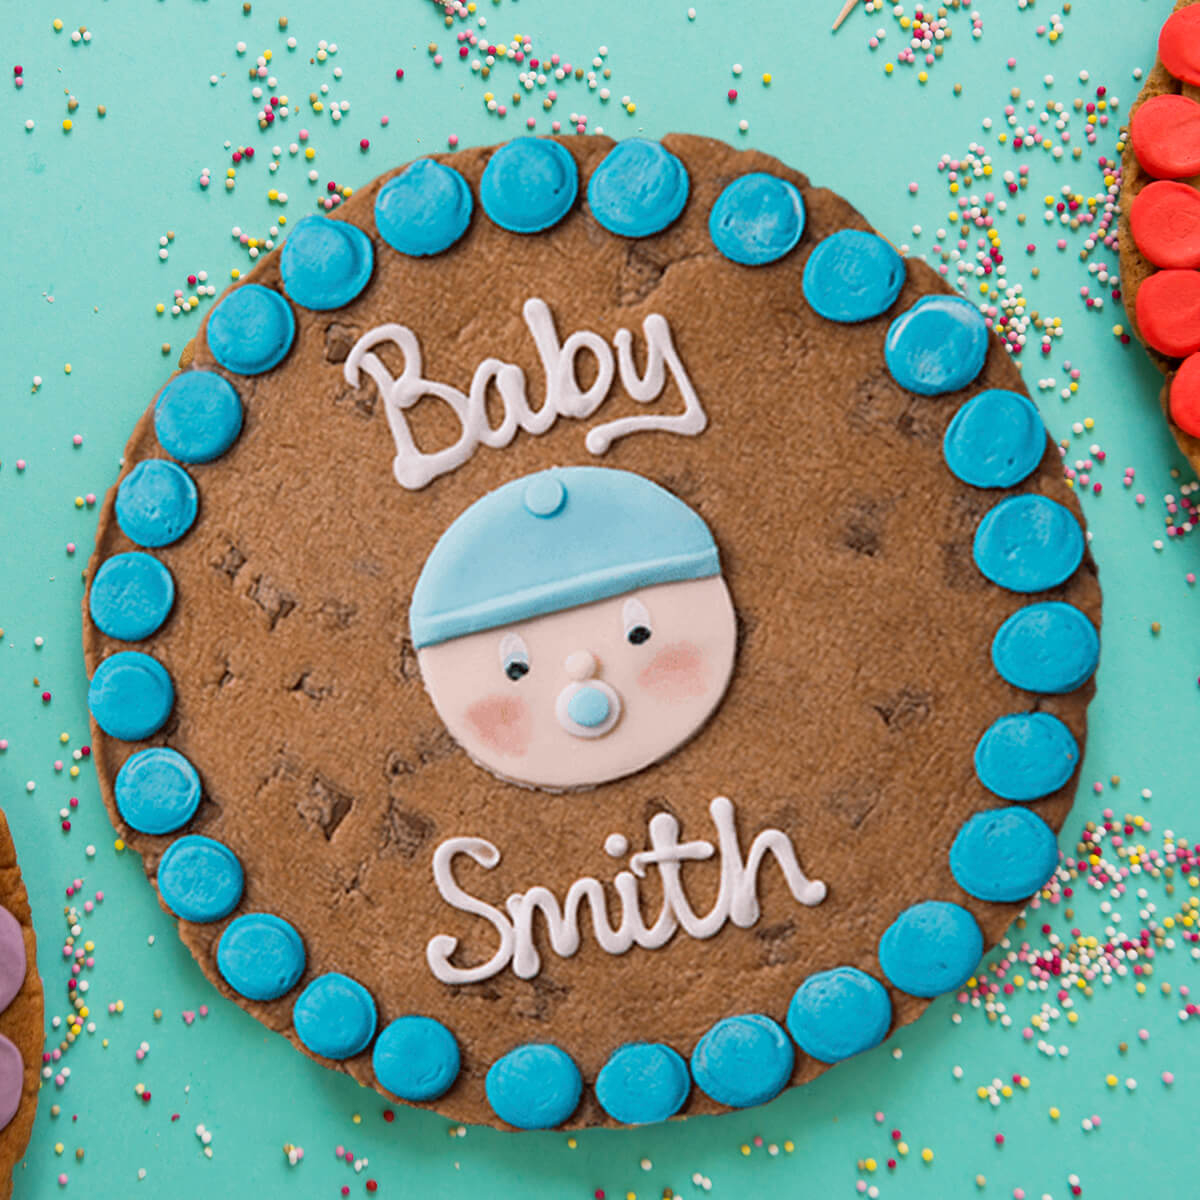 Personalised Baby Boy Giant Cookie Personalized Cookies Giant